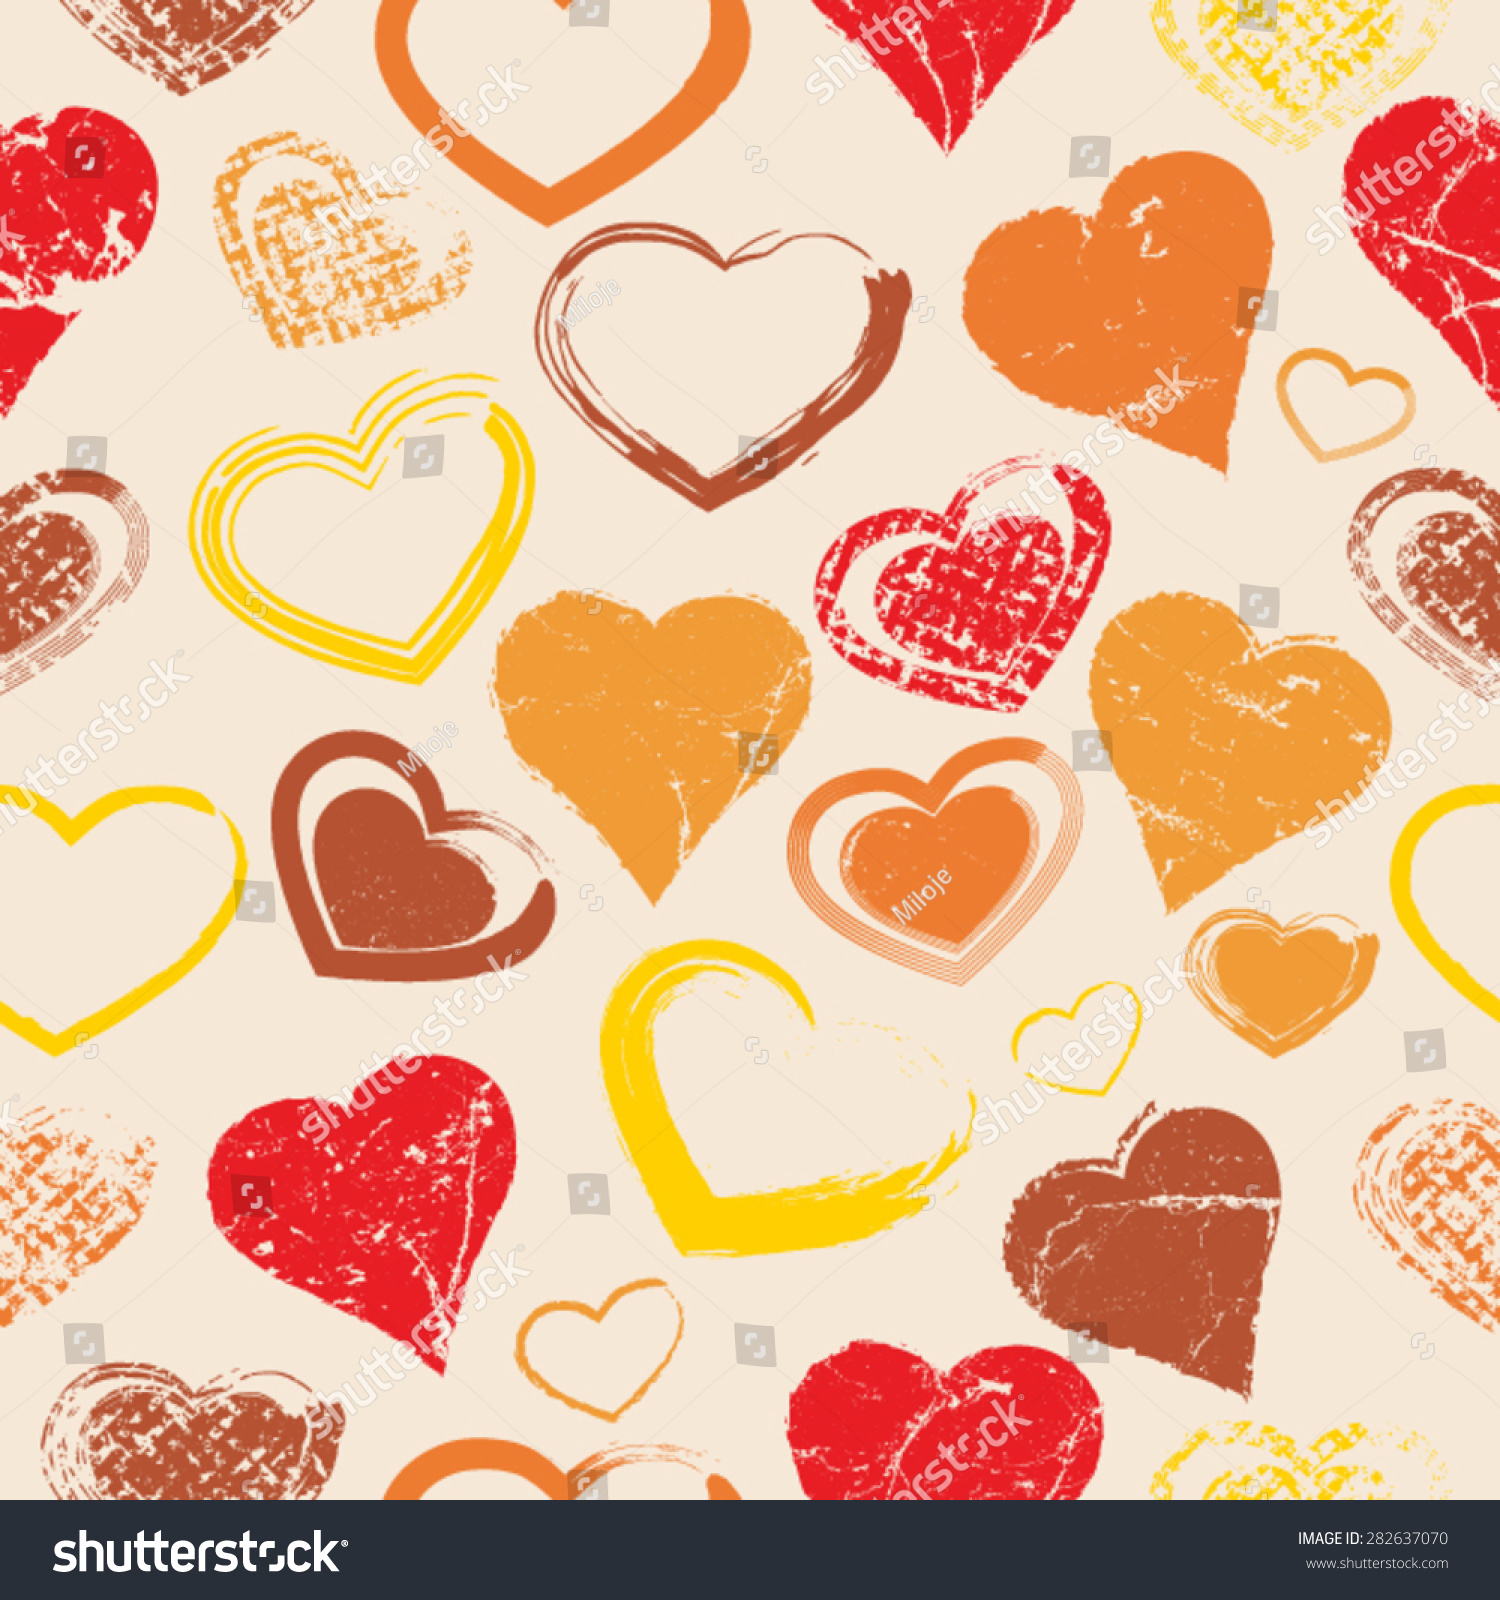 Vector Seamless Pattern Hearts Grunge Style Stock Vector 282637070